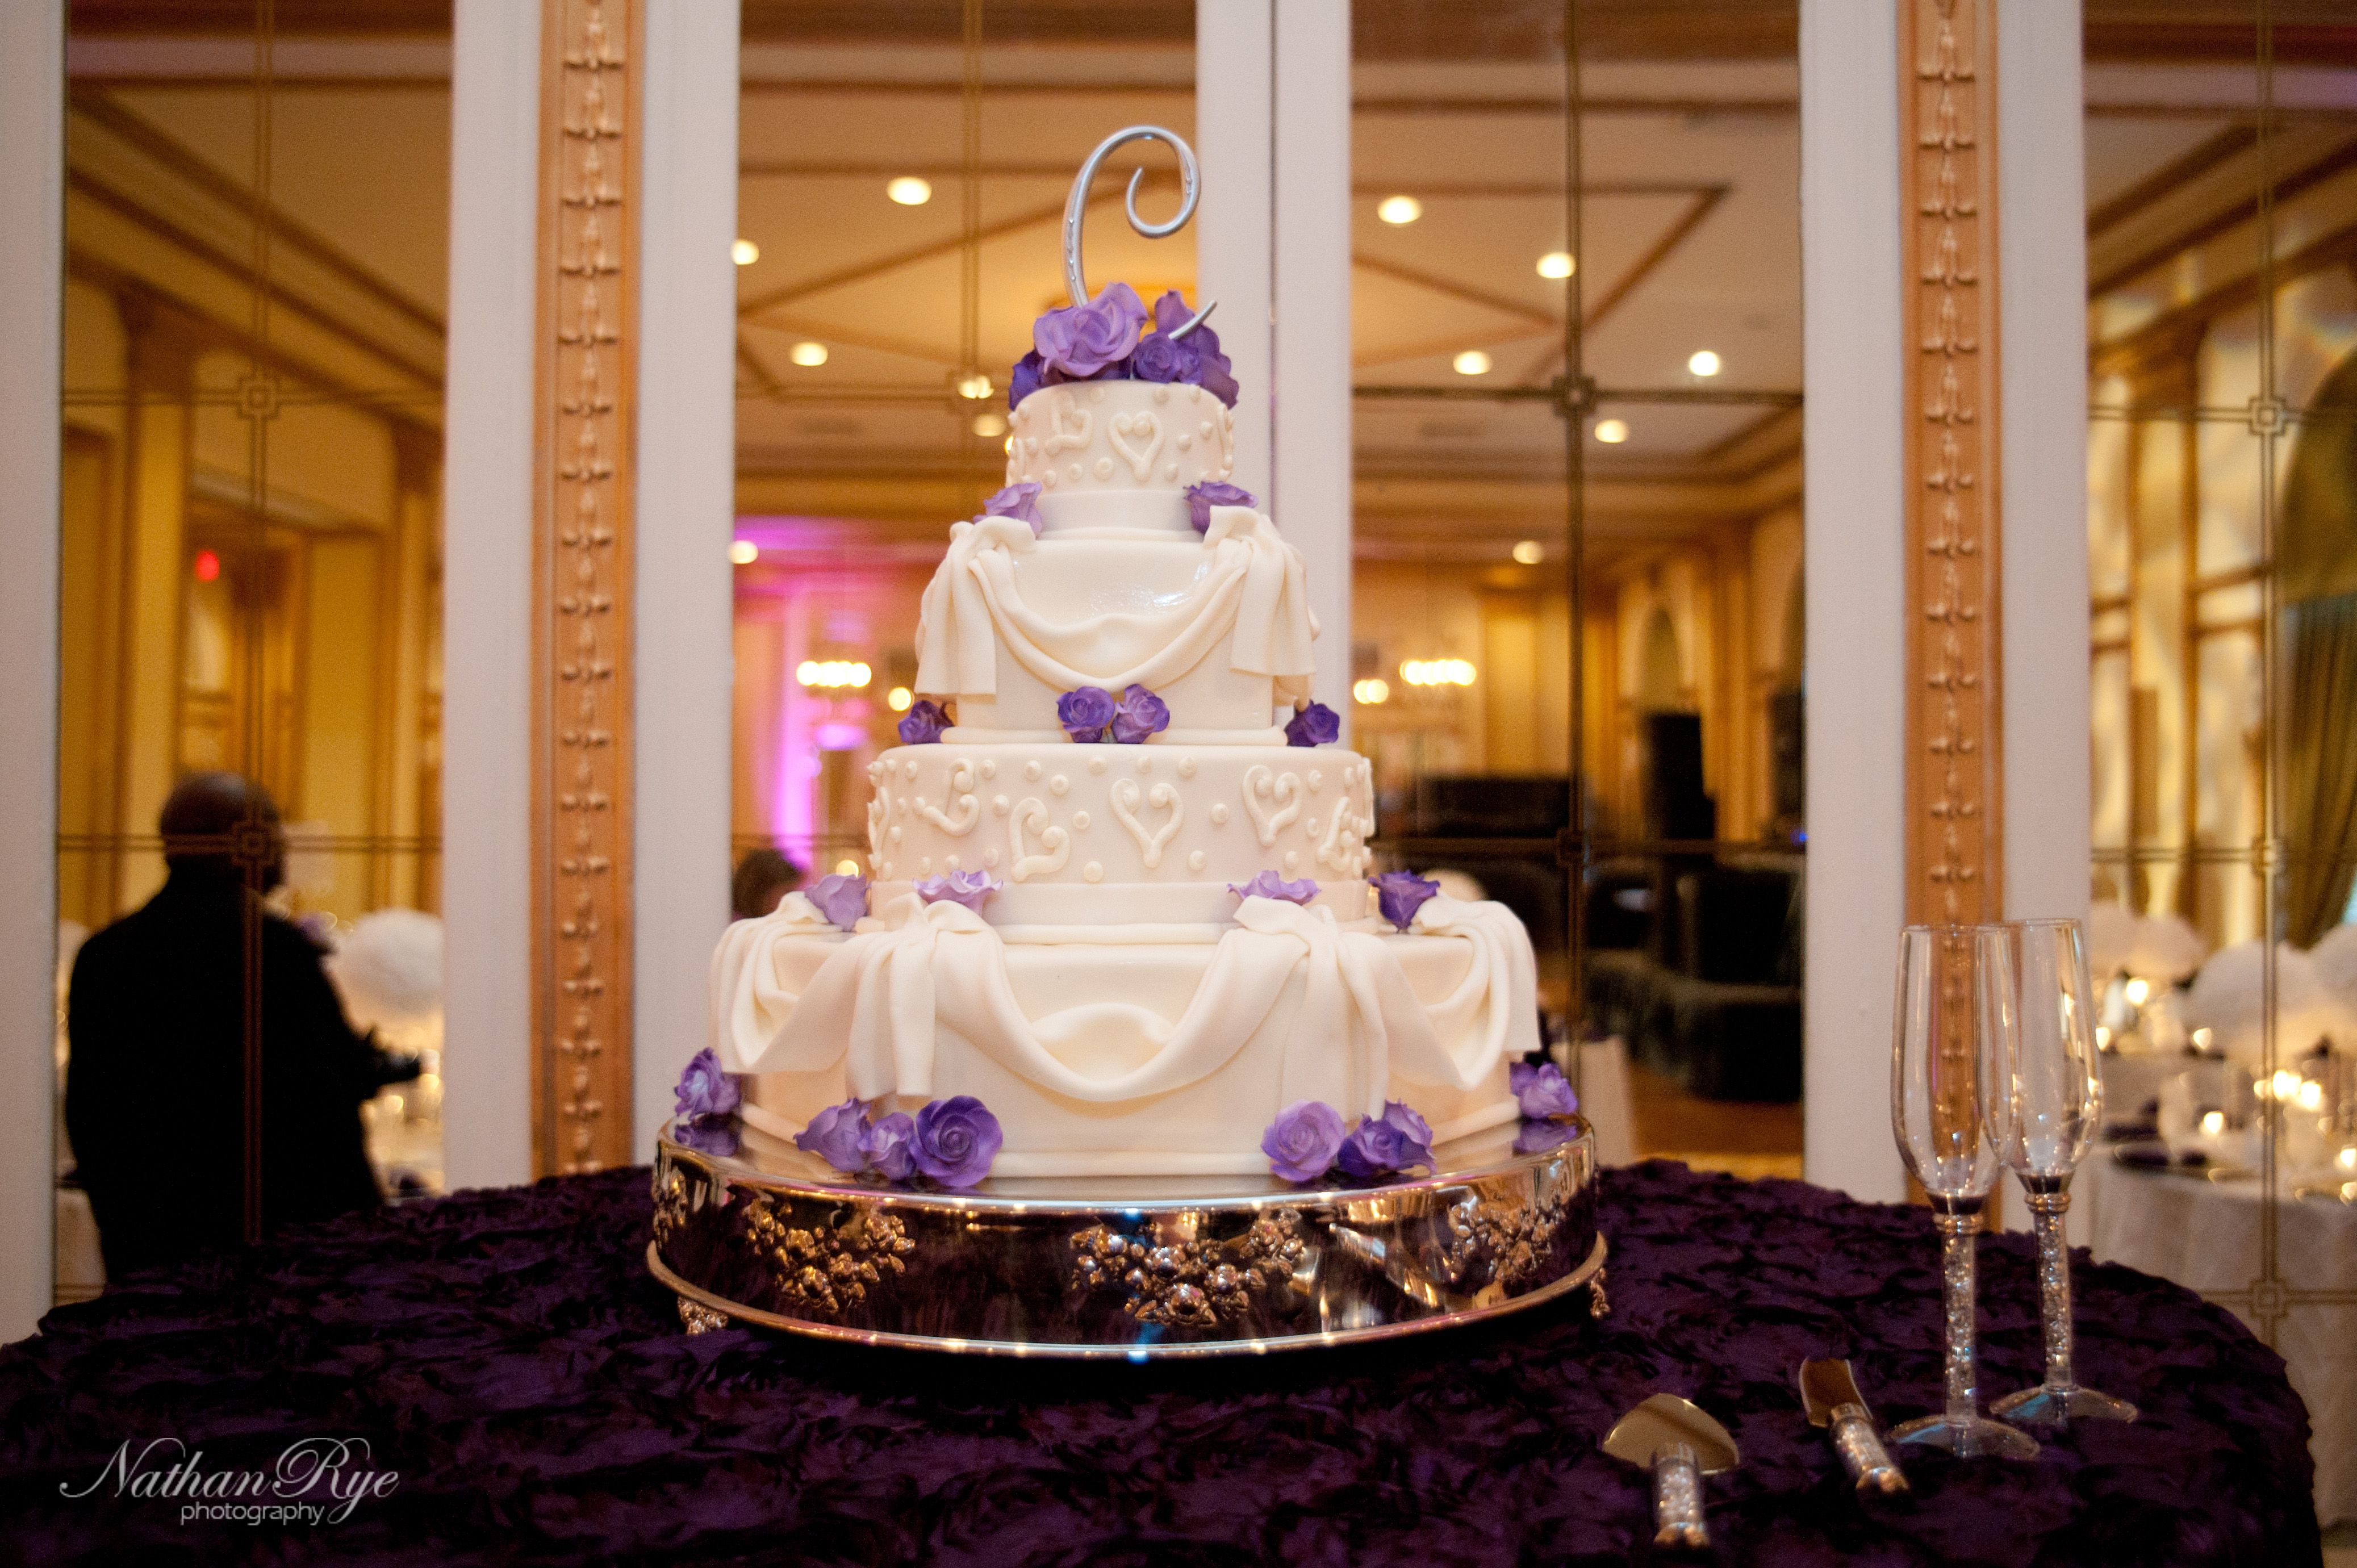 Wedding Cake Table Design By Southern Event Planners Memphis Tennessee Photo Nathan